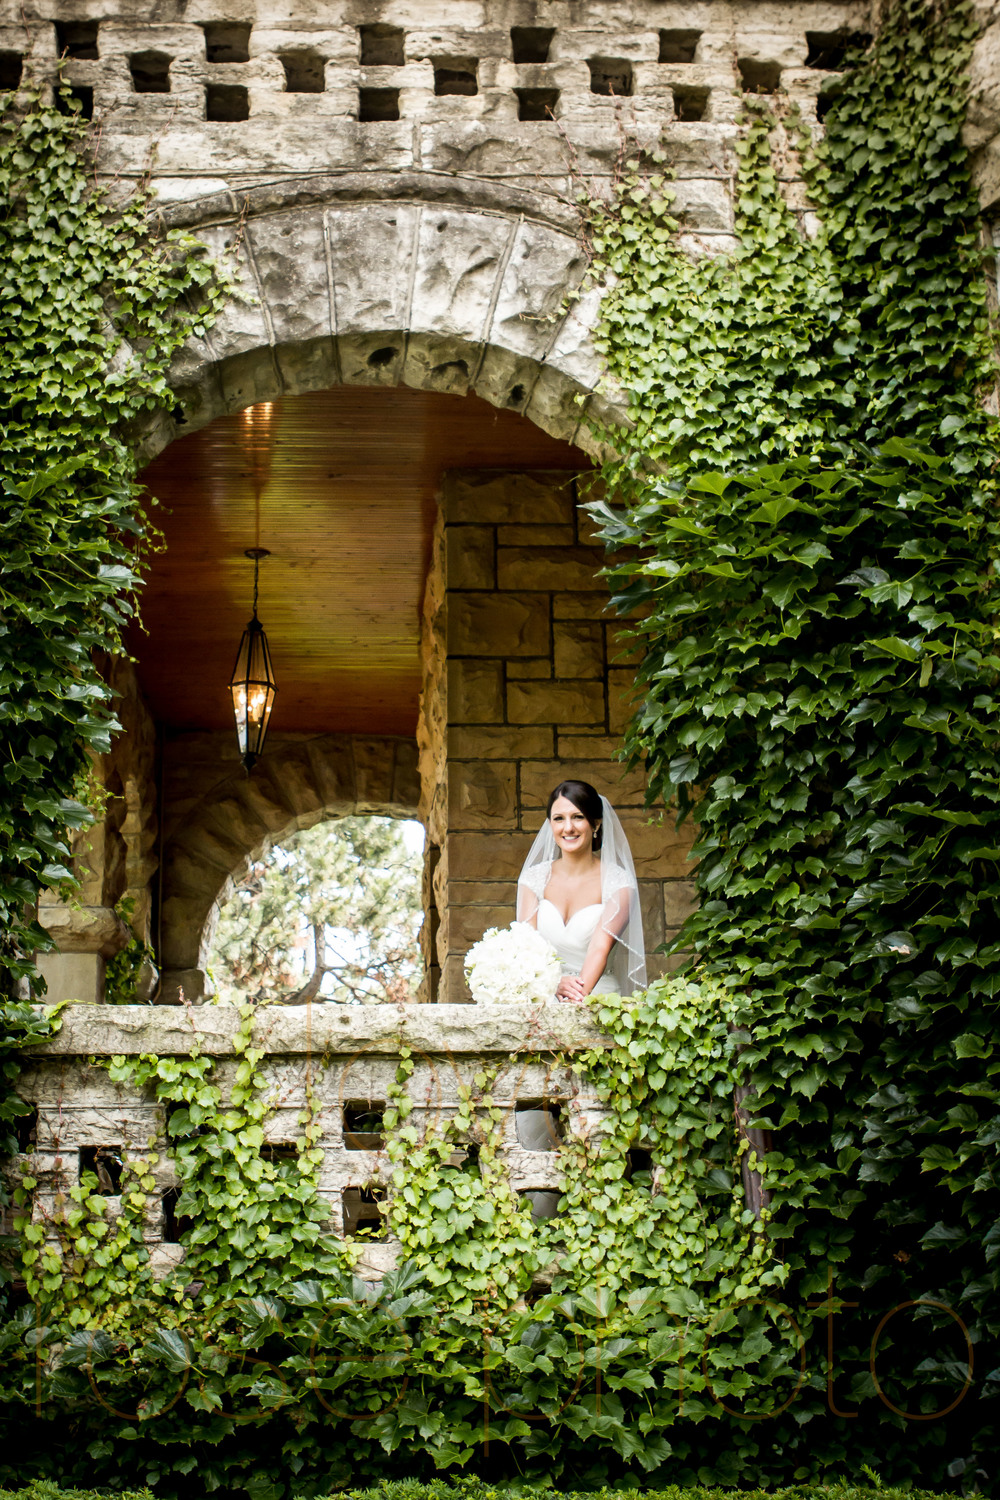 ellen + bryan chicago wedding joliet james healy mansion portrait lifestyle photojournalist photographer -005.jpg